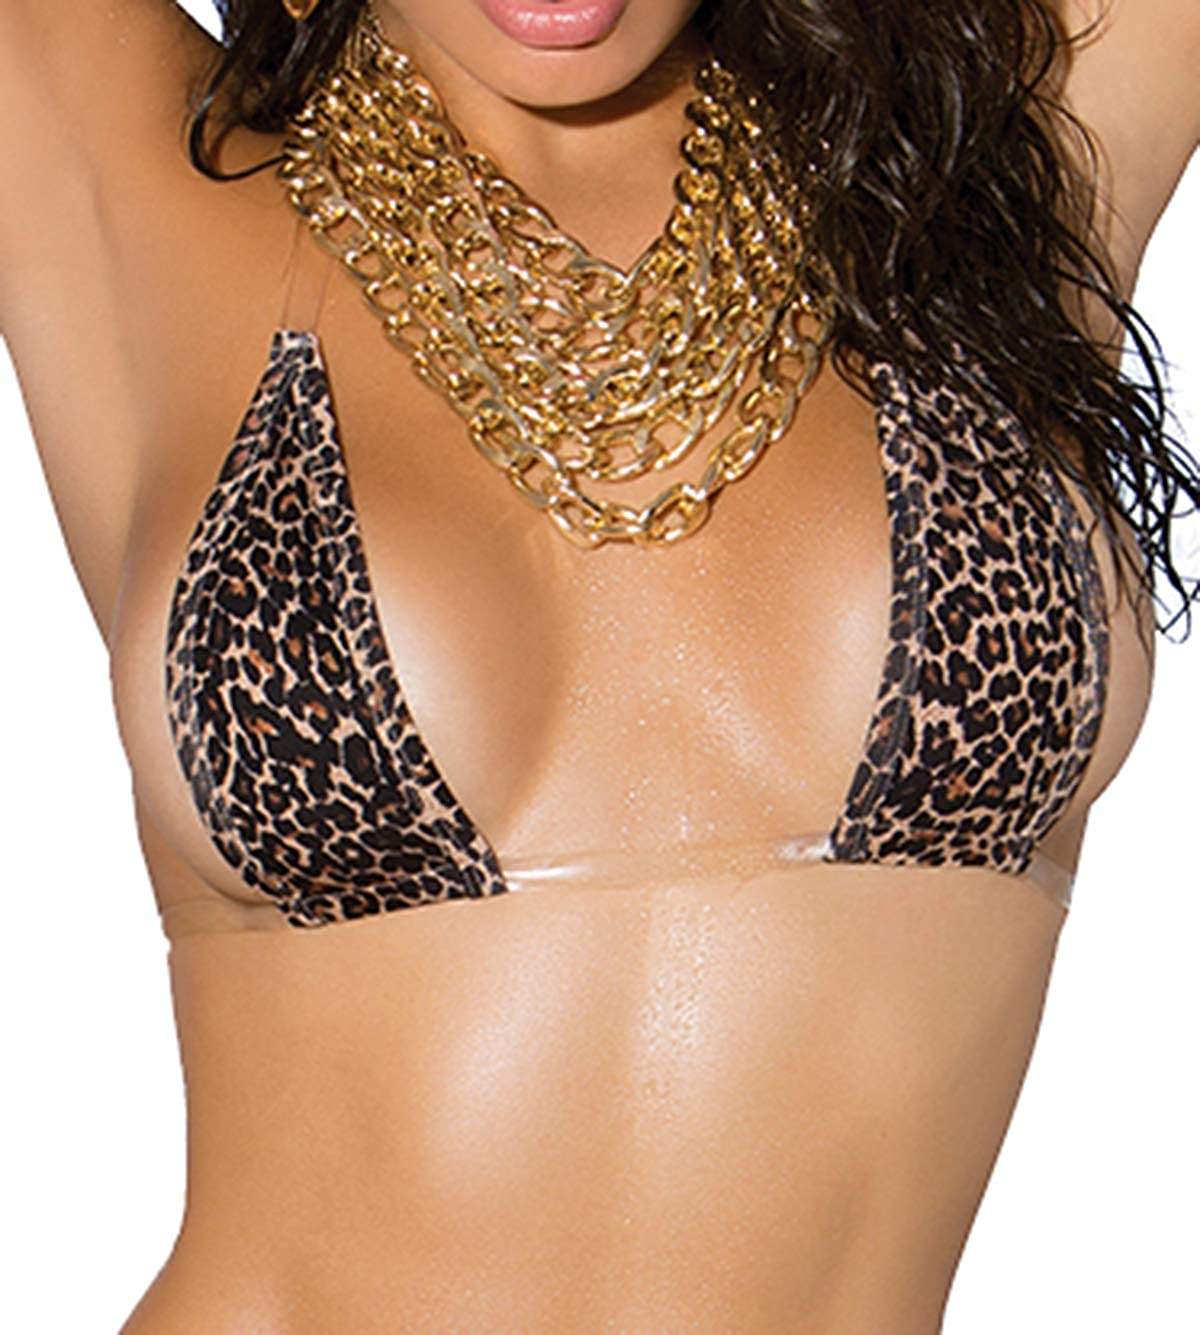 Hot Spot Lycra Bikini Top and Matching G-String with Clear Elastic Trim